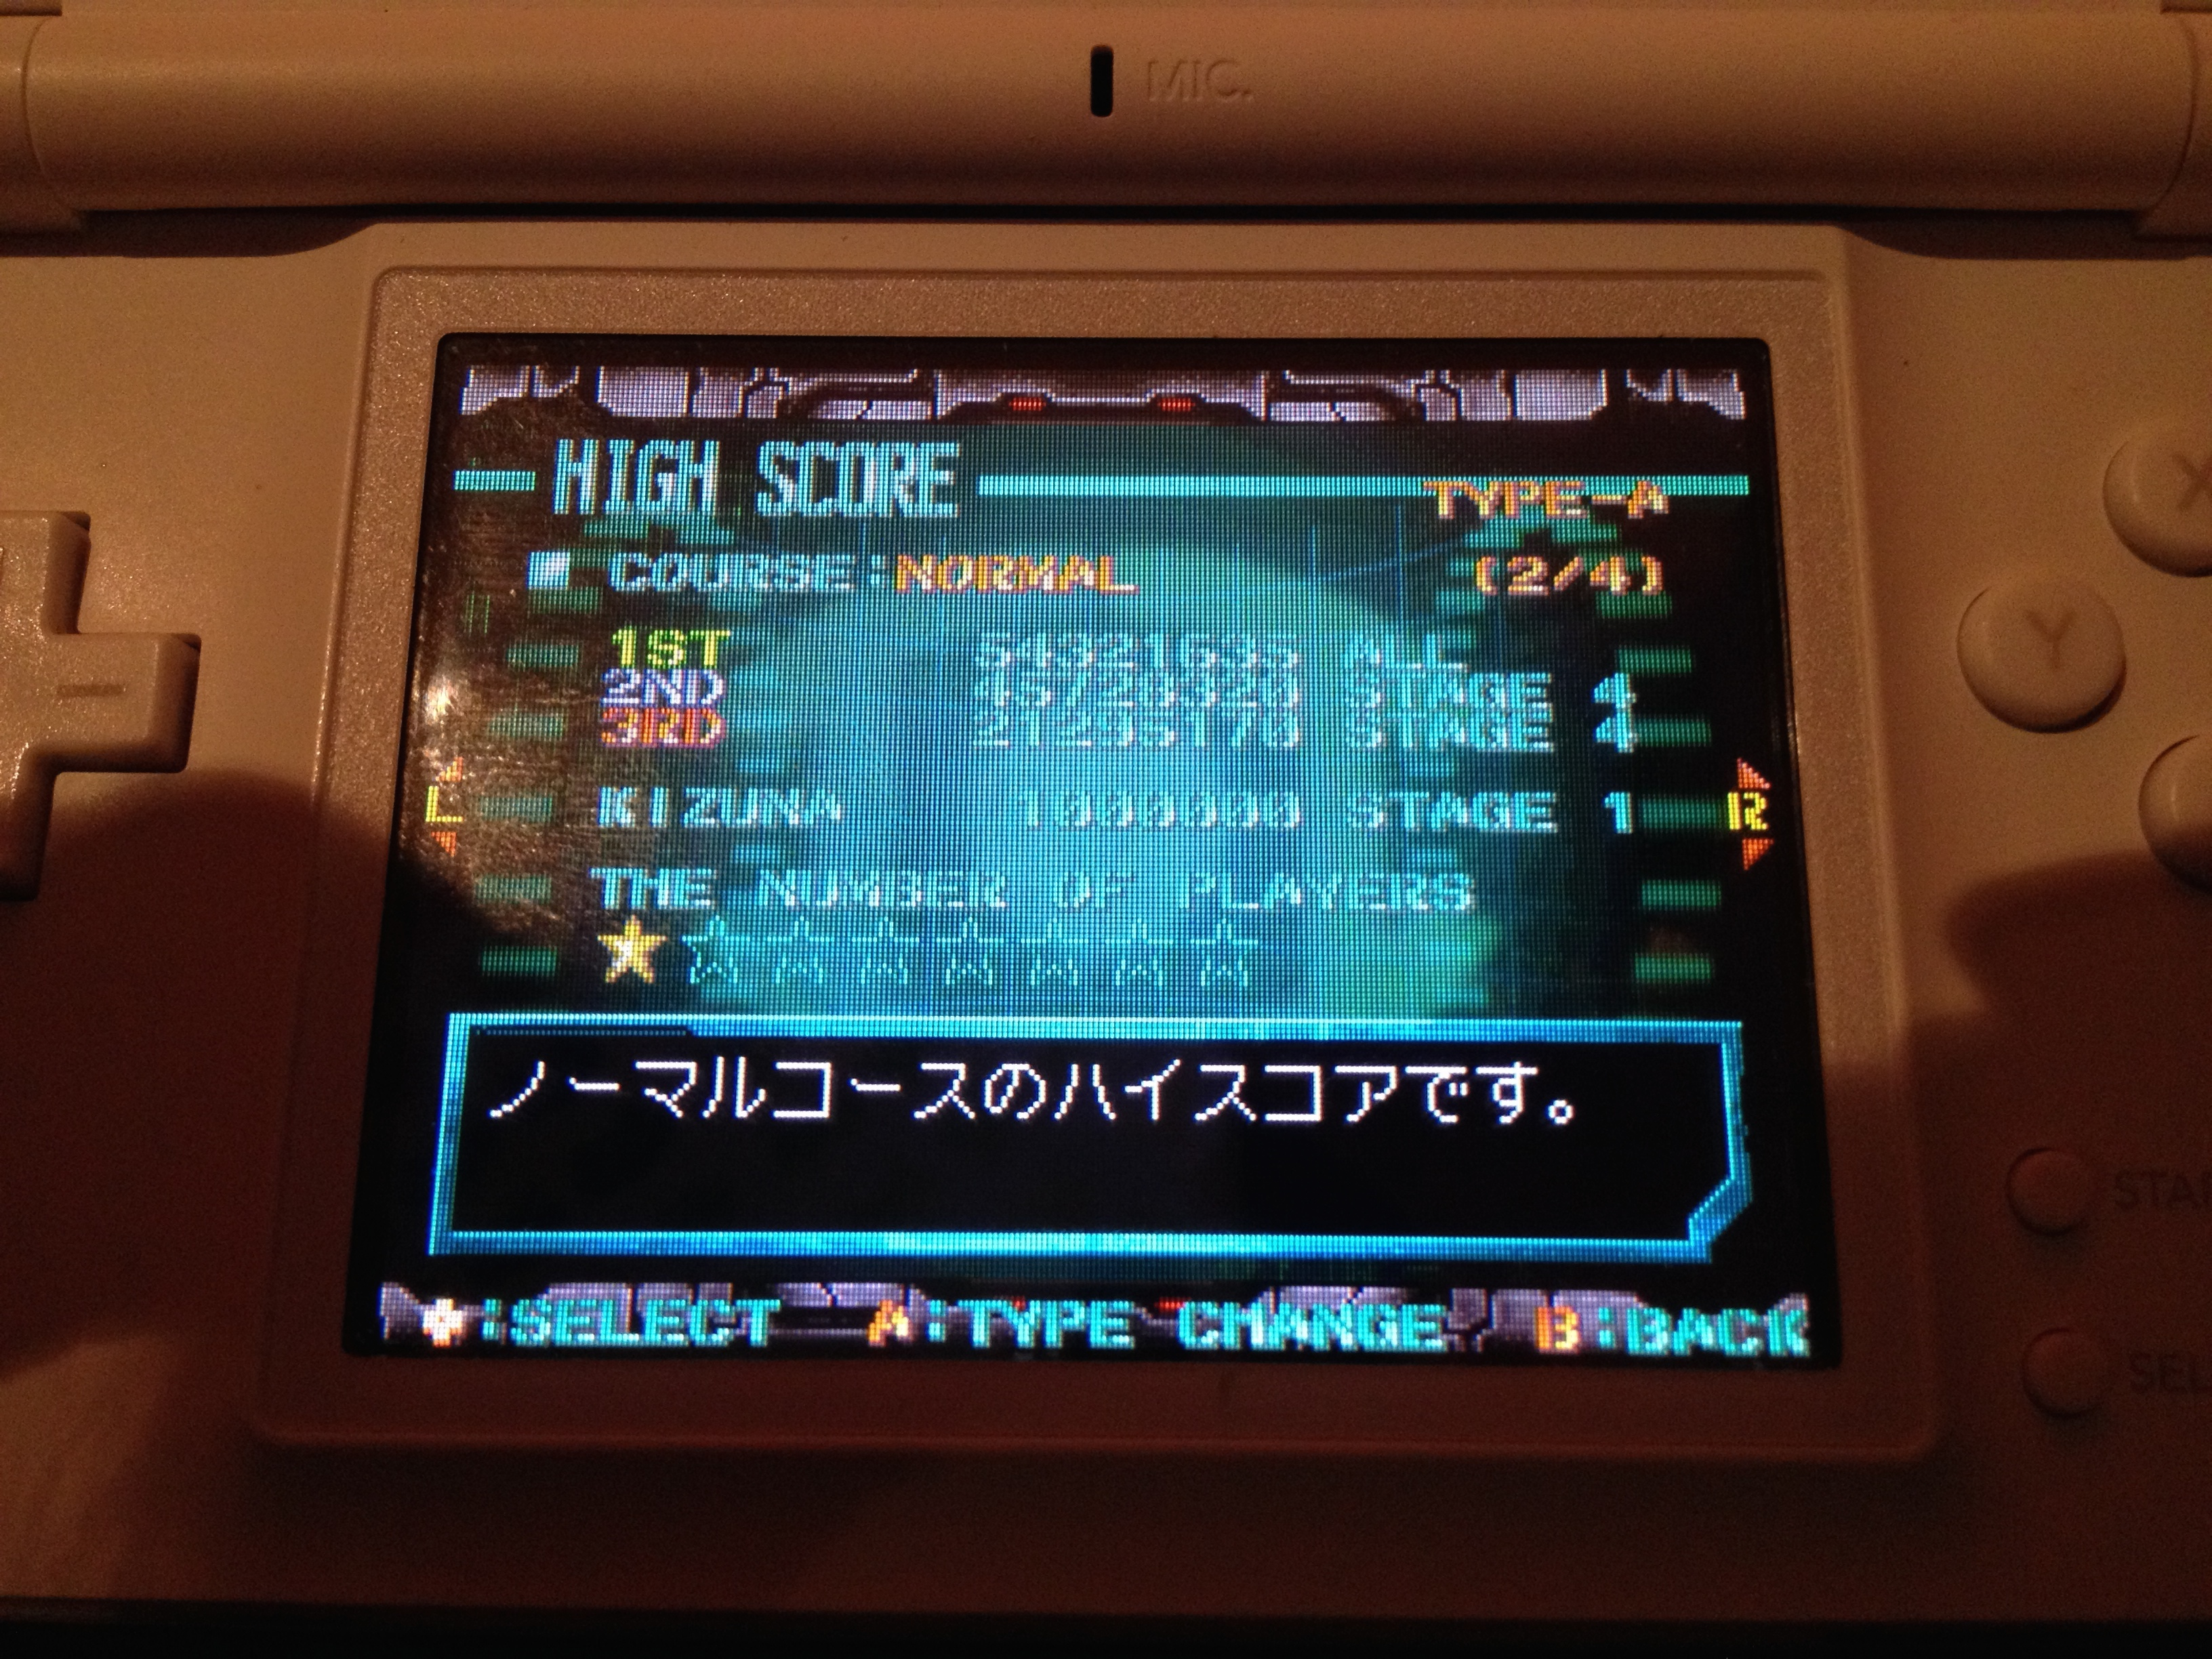 AmetDj: Ketsui: Death Label [Normal] (Nintendo DS) 54,321,635 points on 2014-08-28 15:58:18